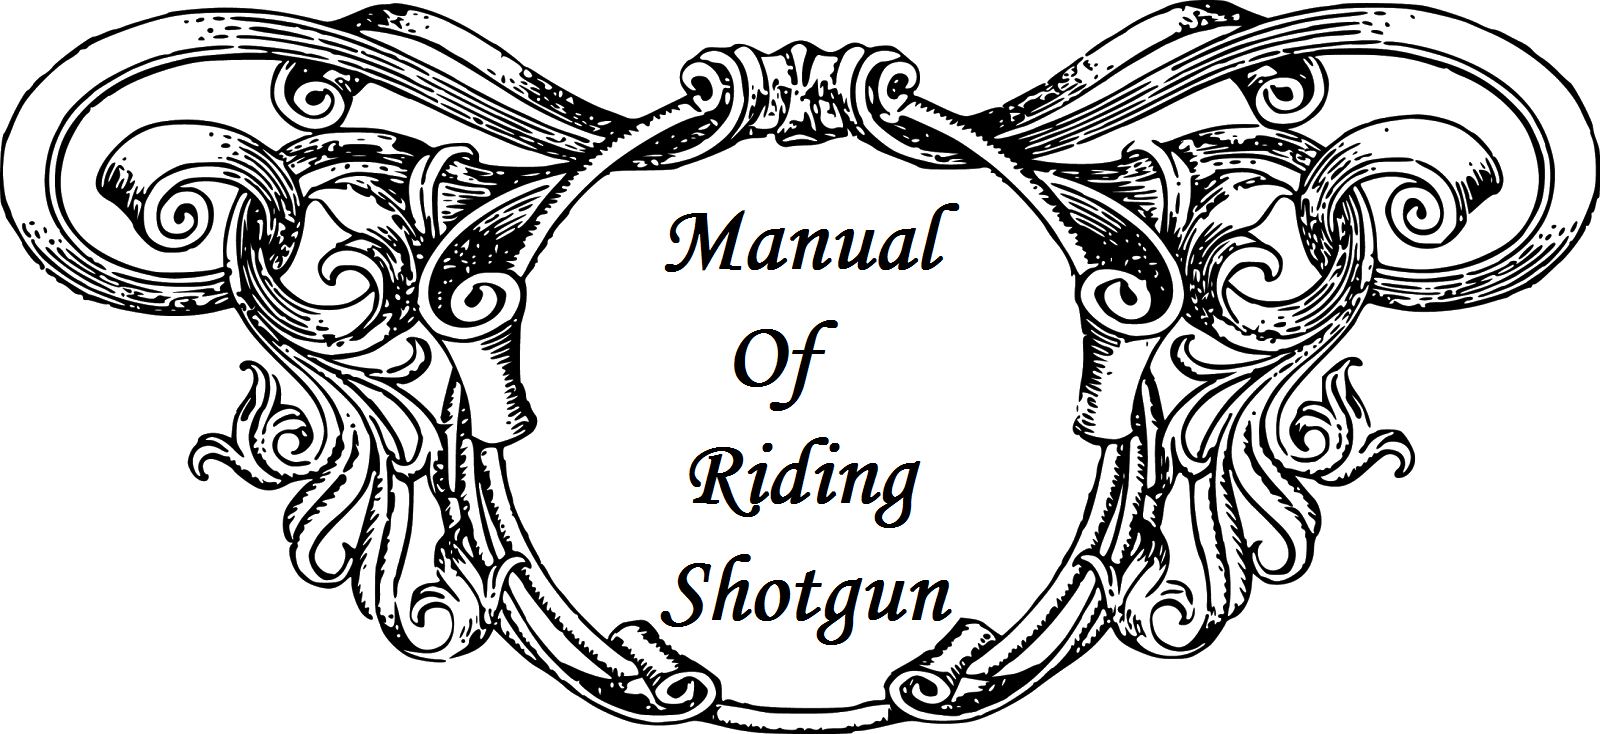 Manual of Riding Shotgun call Phraseology header